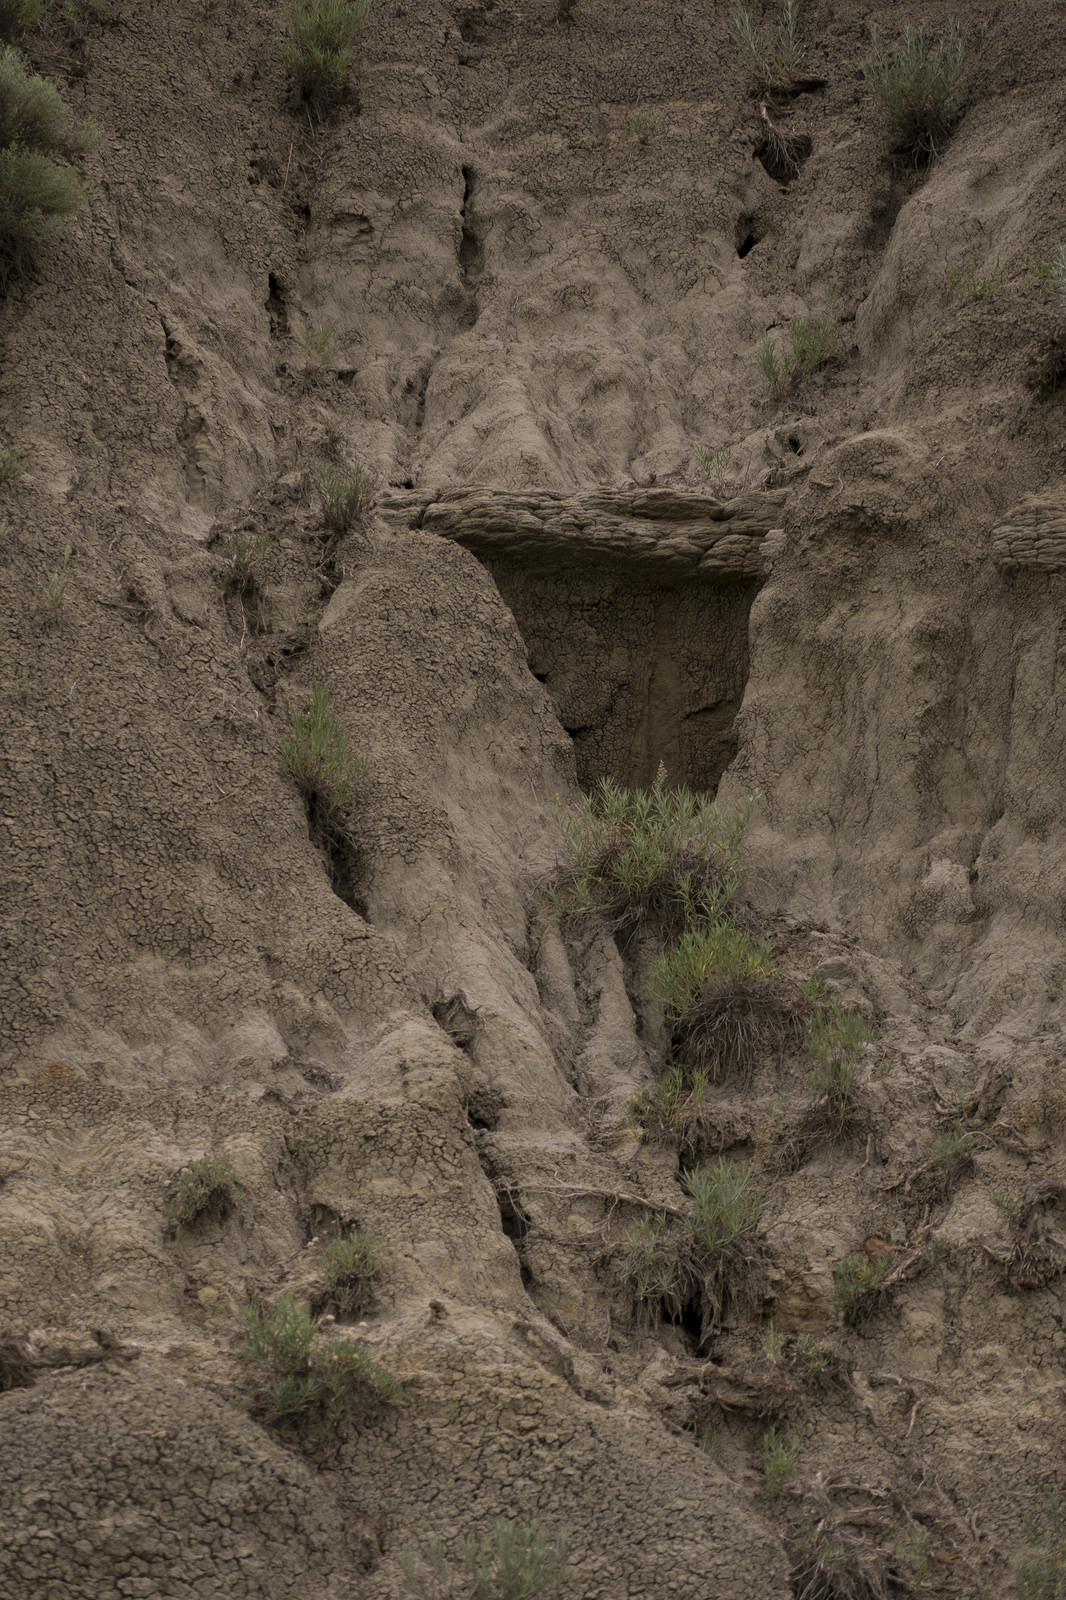 A dense layer creates a natural shelf in a wall of eroded sandstone.